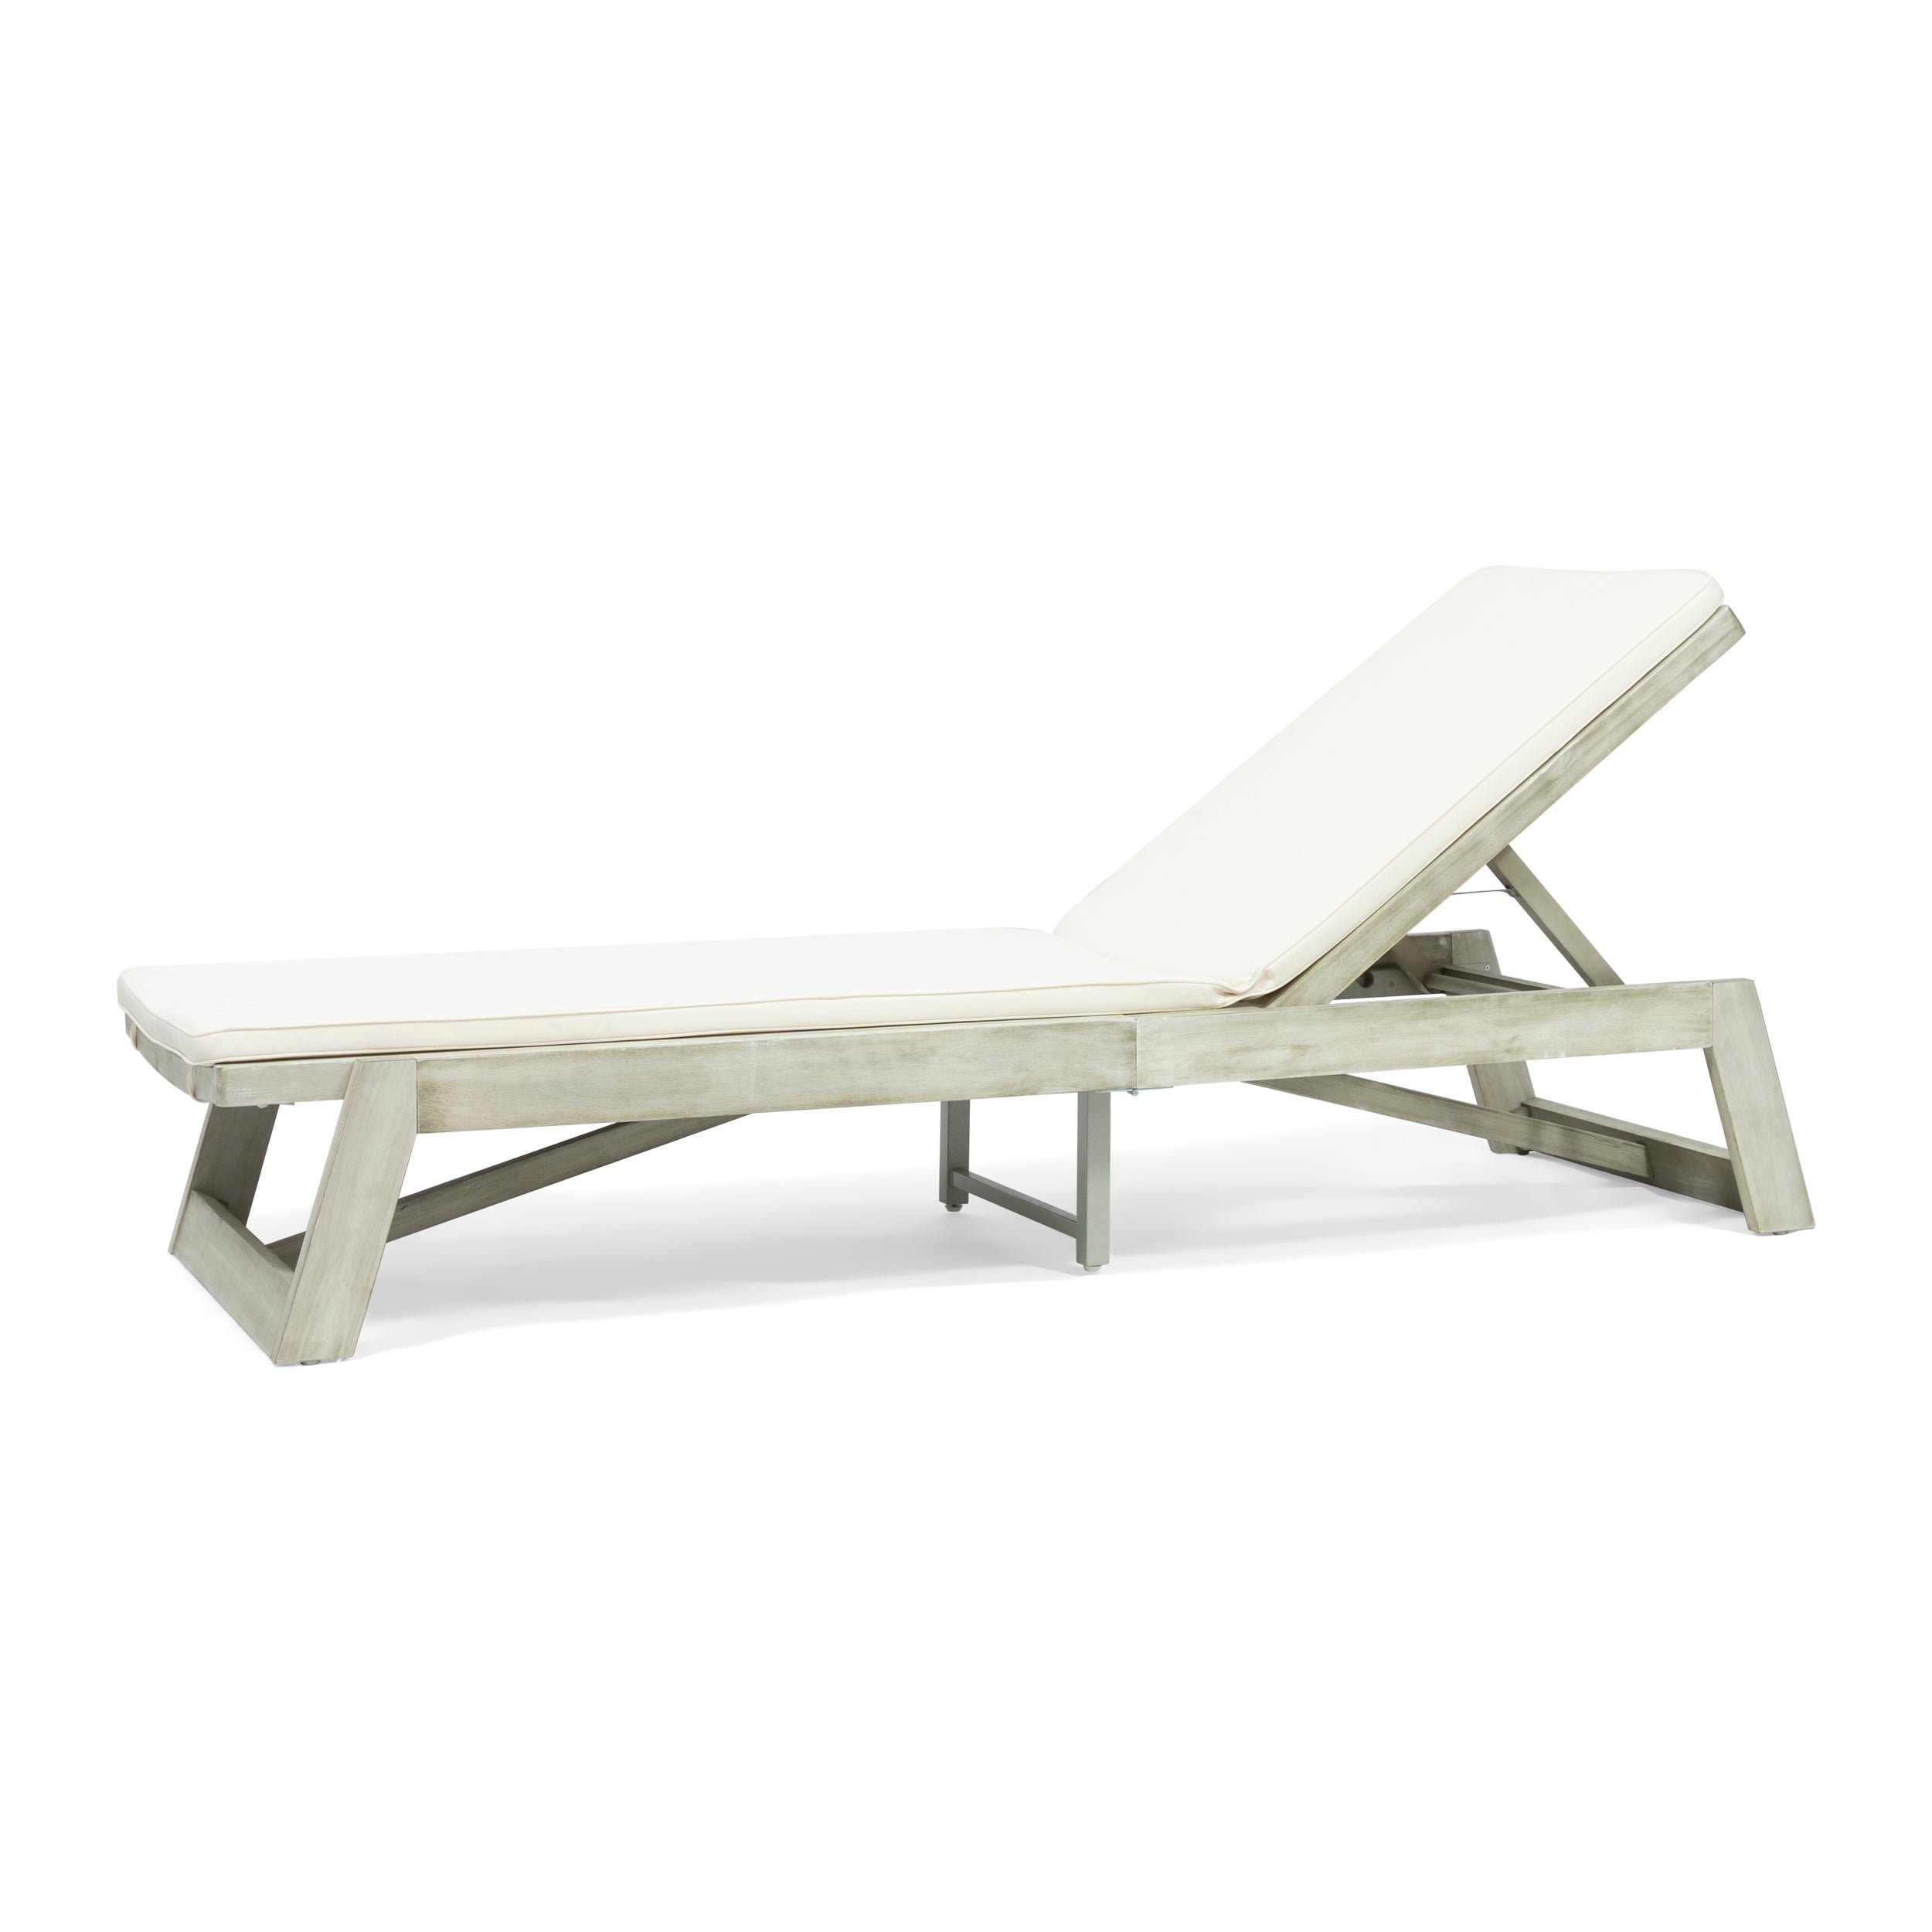 Adelaide Outdoor Acacia Wood Chaise Lounge and Cushion Set